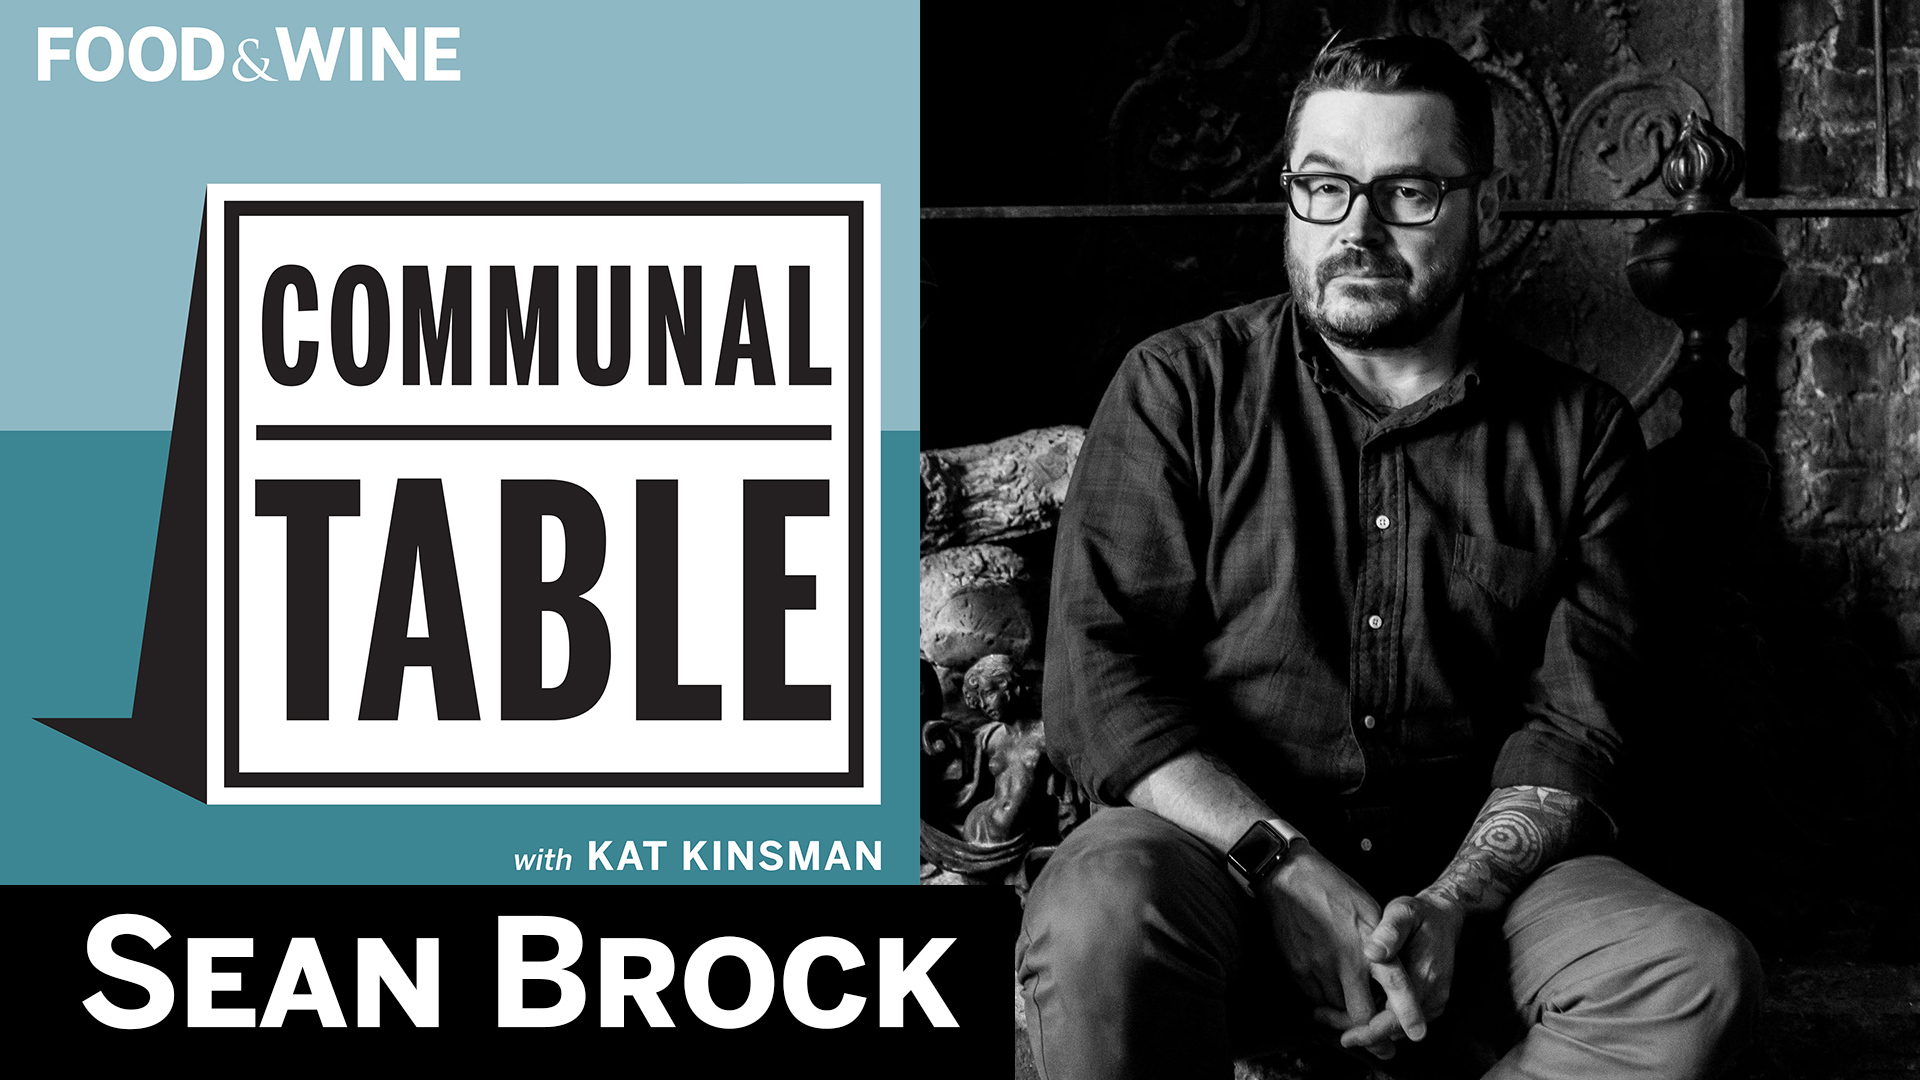 Communal Table Podcast: Sean Brock Live at The Bell House